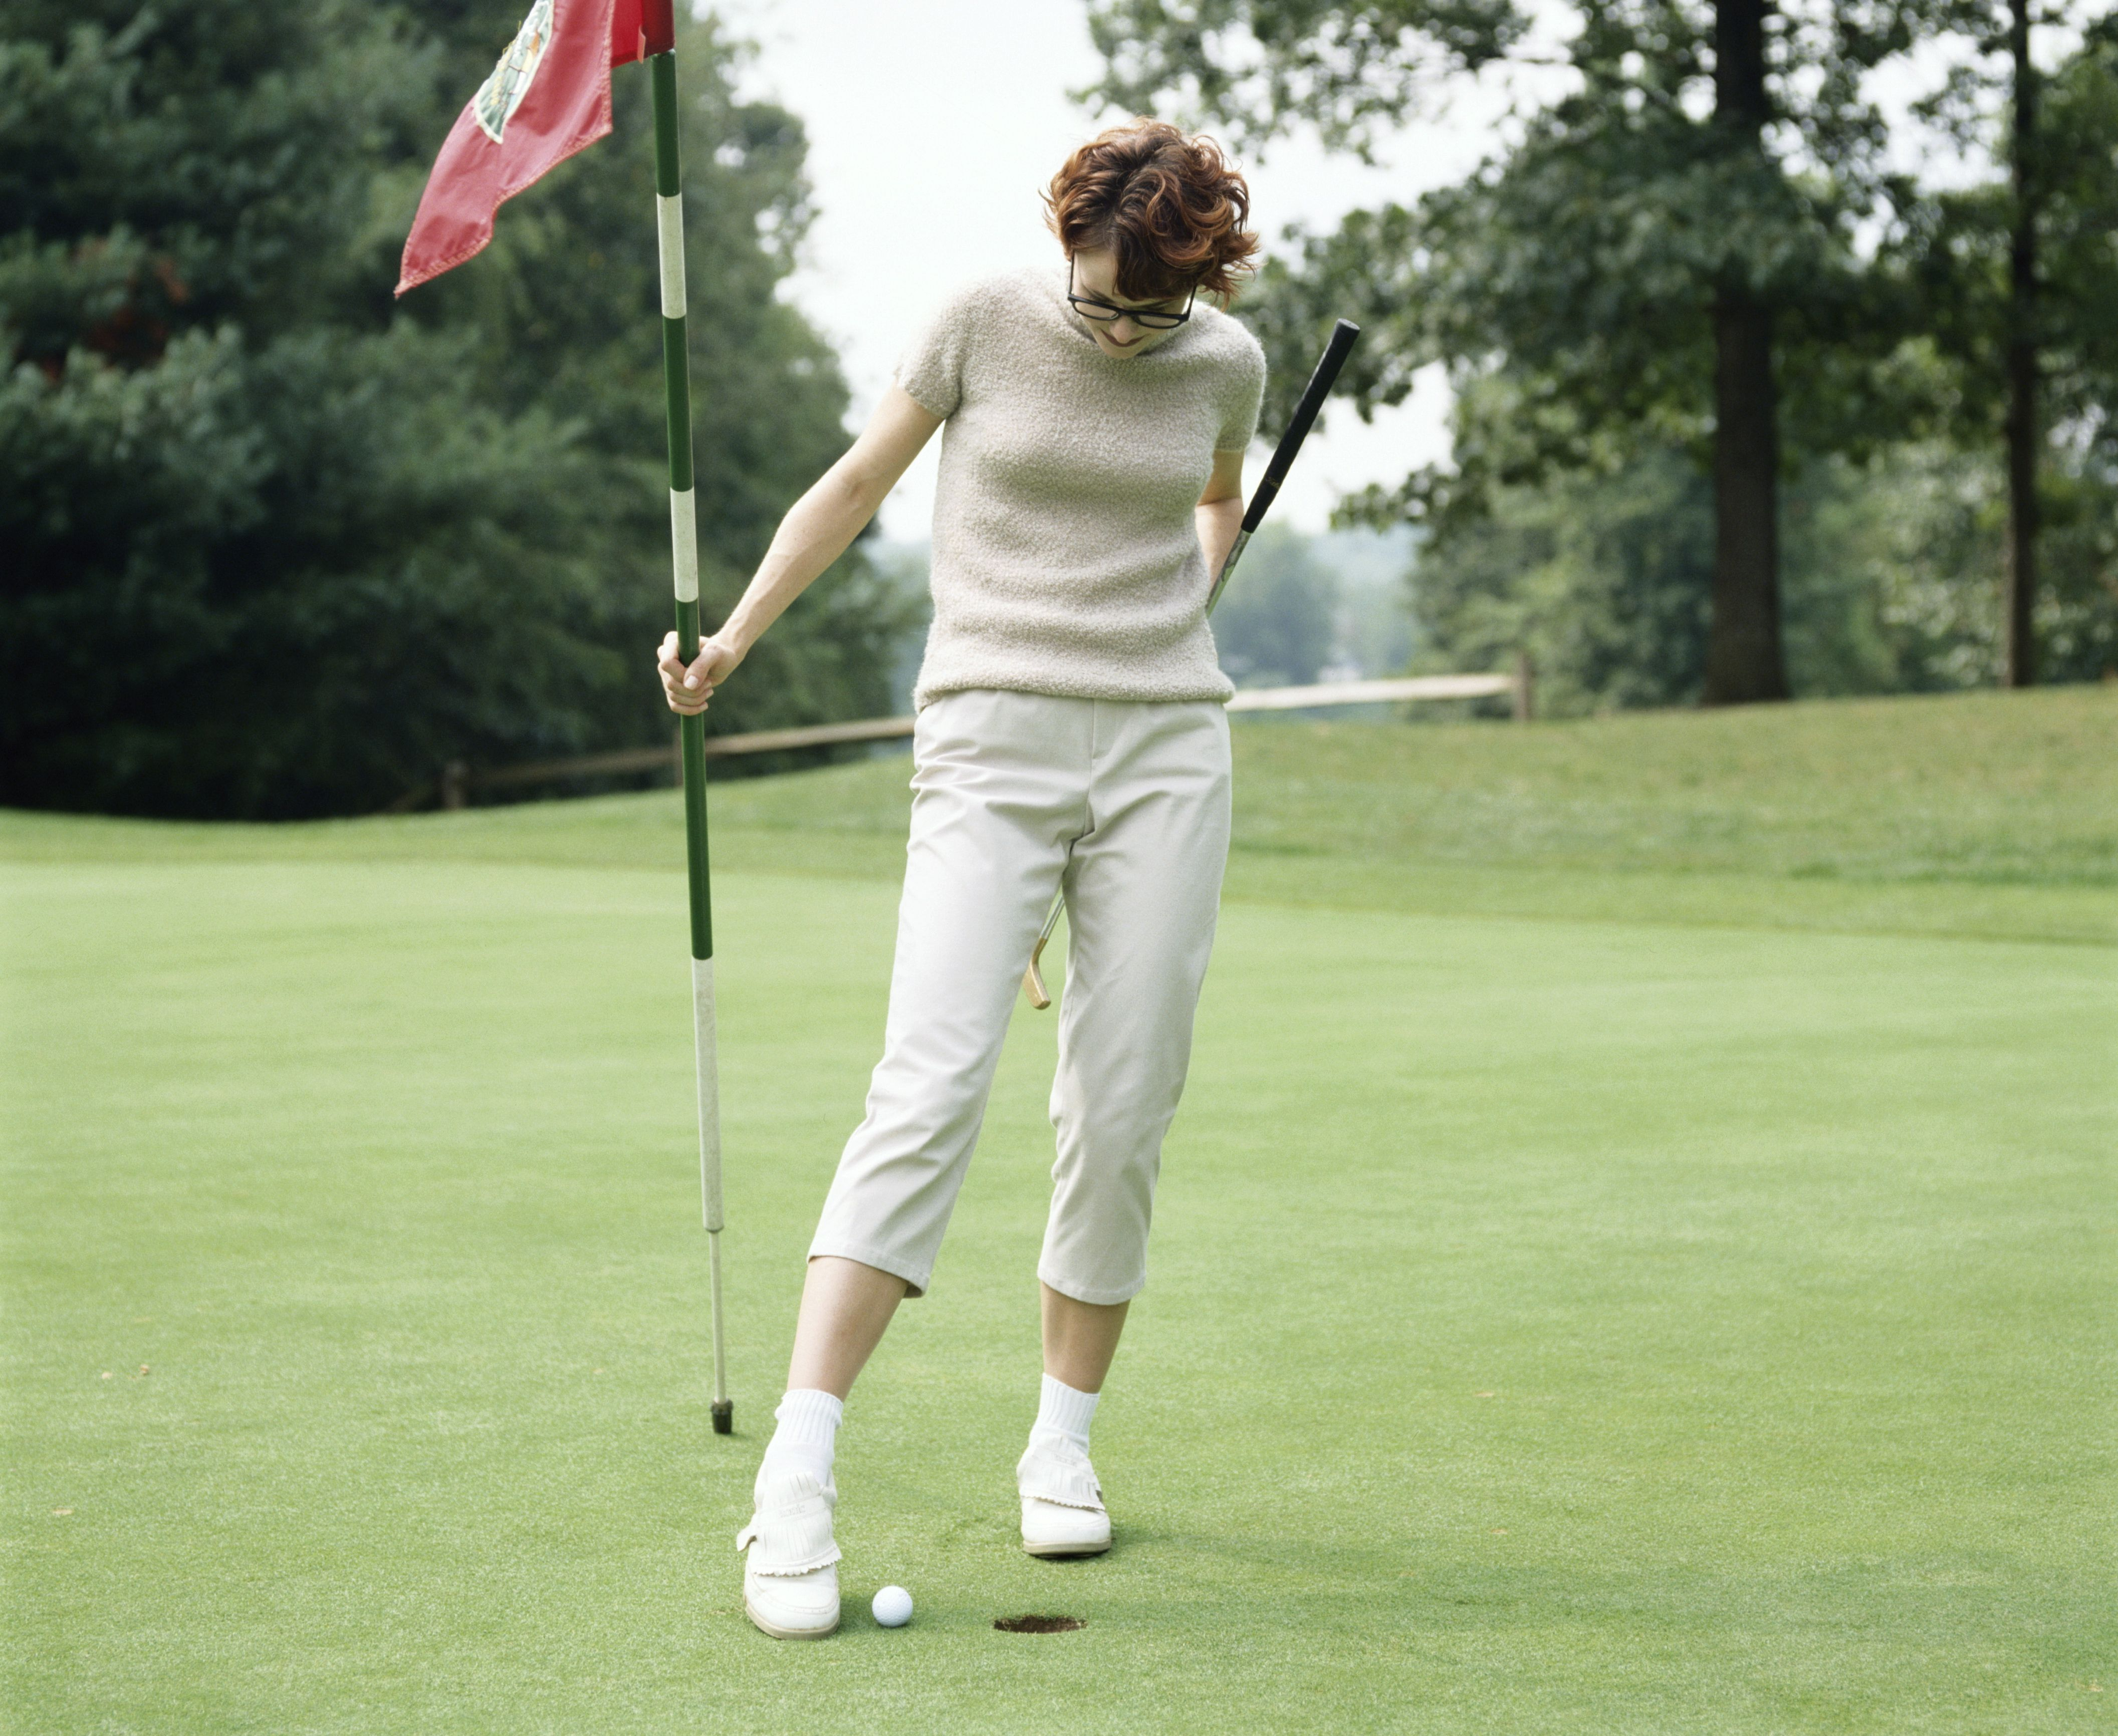 woman using her foot to knock golf ball into hole